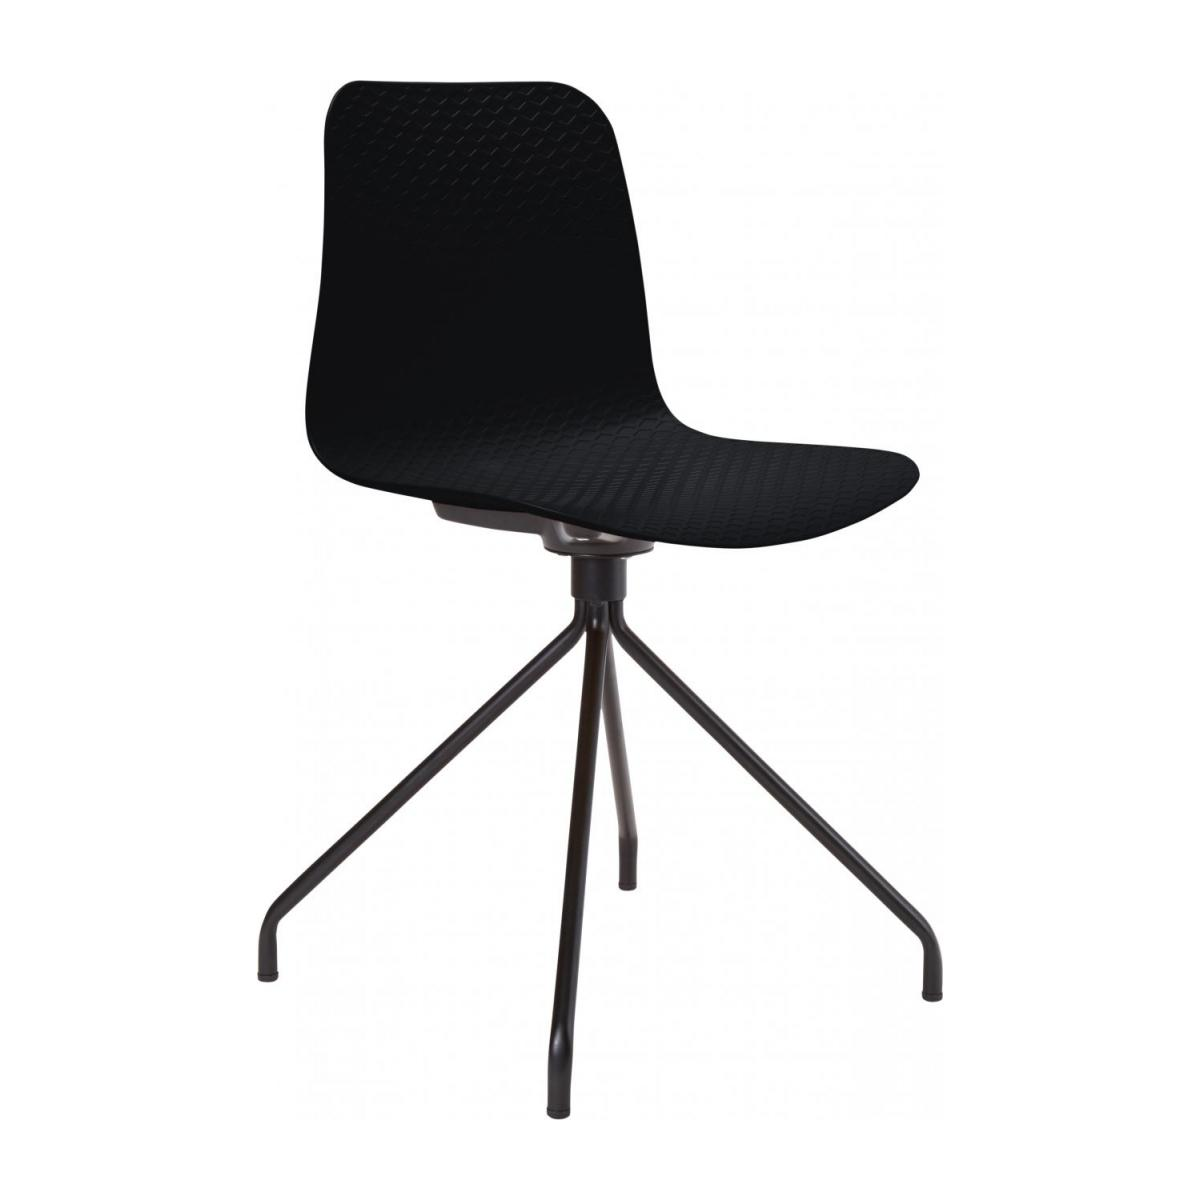 Black chair in polypropylene and lacquered steel legs n°1